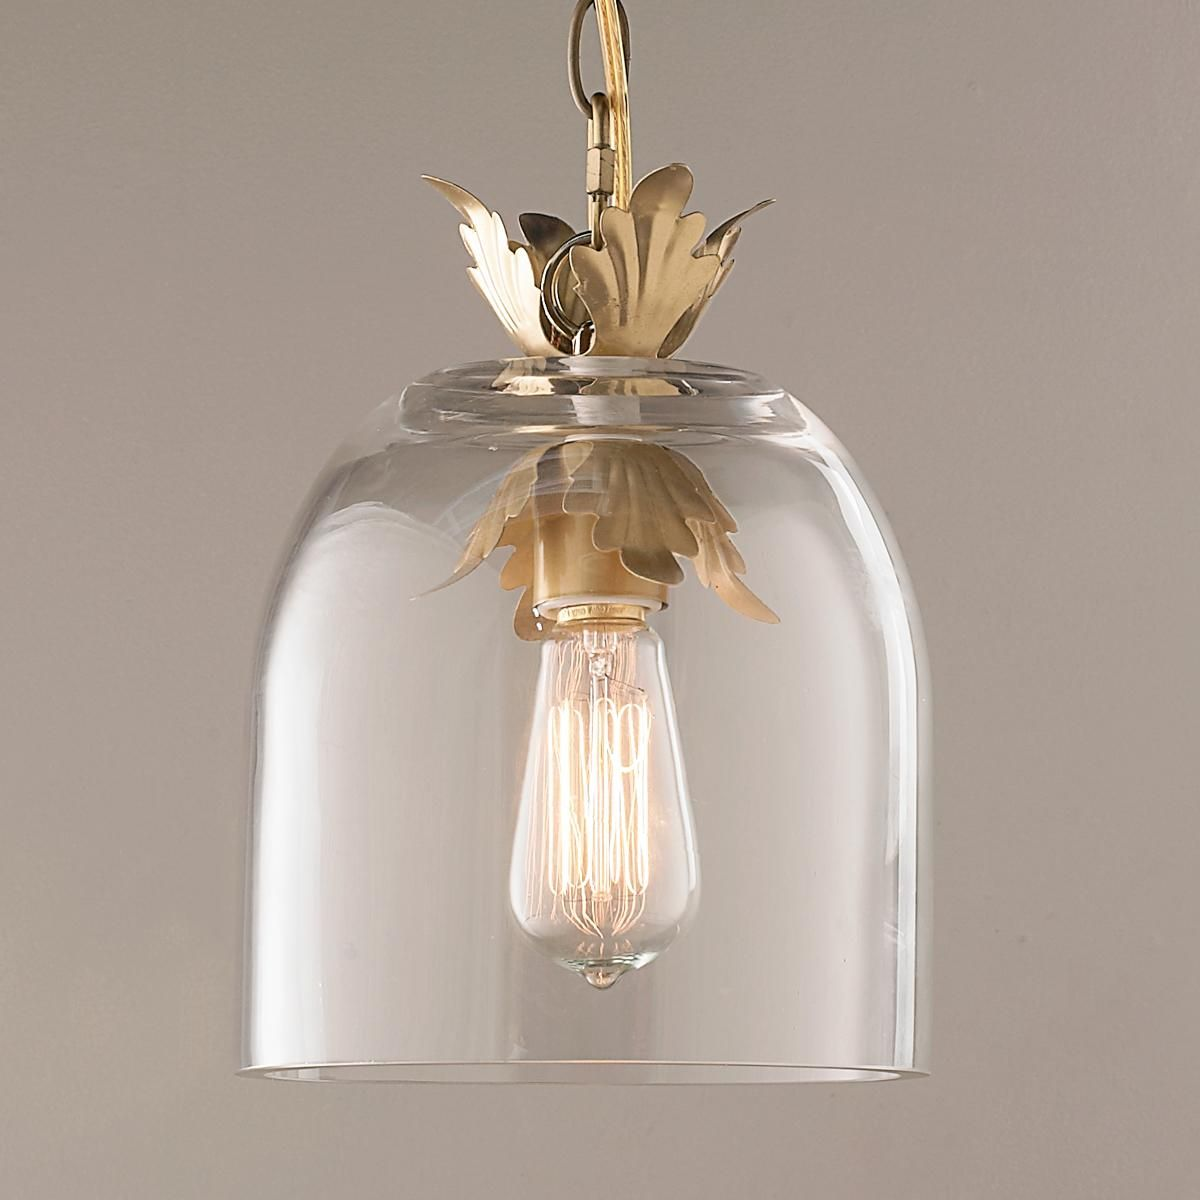 Clear Glass Pendant Lights For Kitchen Island Acanthus And Clear Glass Dome Pendant Light Traditional Islands